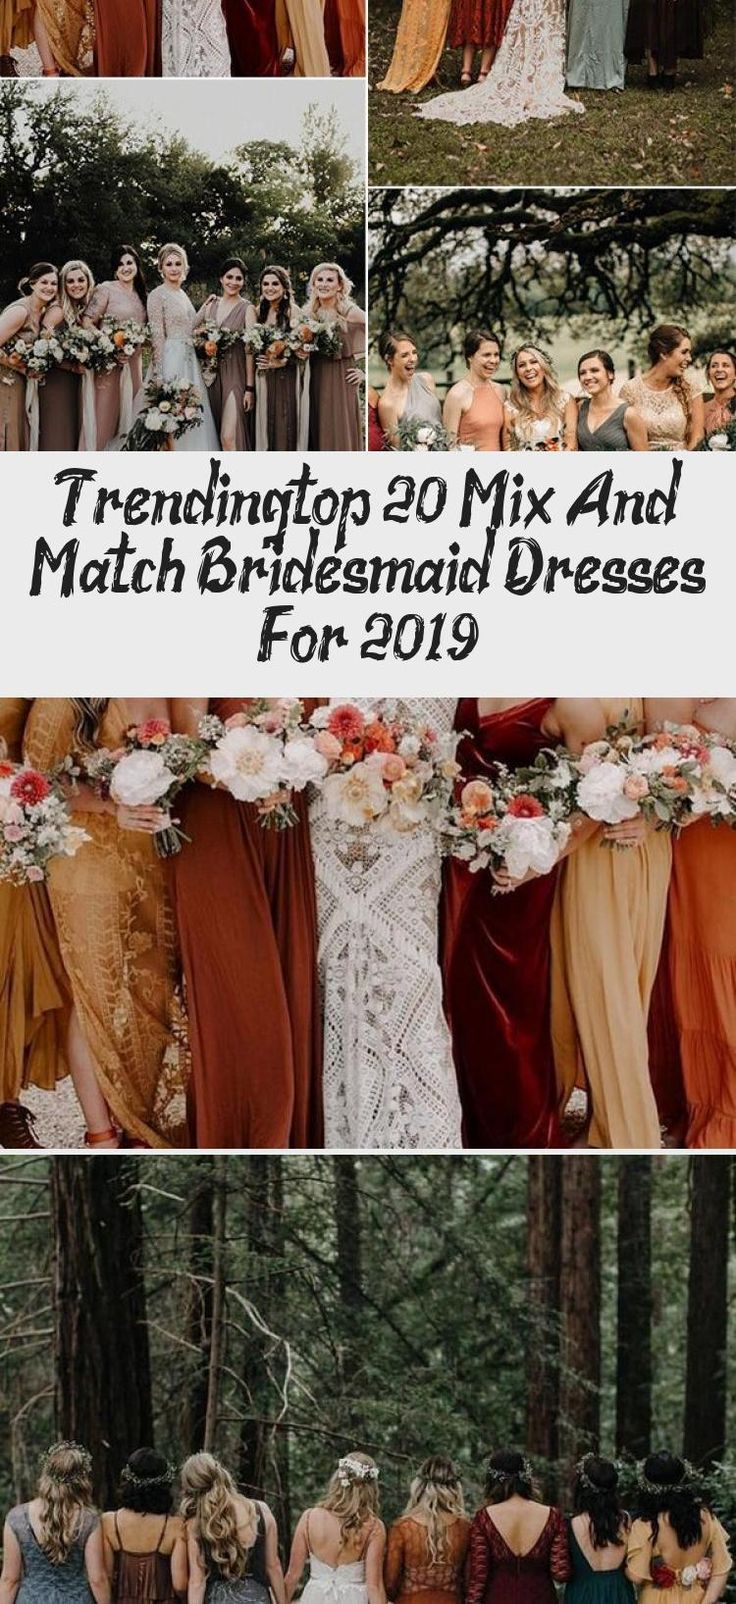 trending mix and match bridesmaid dresses for fall weddings #BridesmaidDressesBlue #MixAndMatchBridesmaidDresses #CheapBridesmaidDresses #BridesmaidDressesWithSleeves #BridesmaidDressesCountry